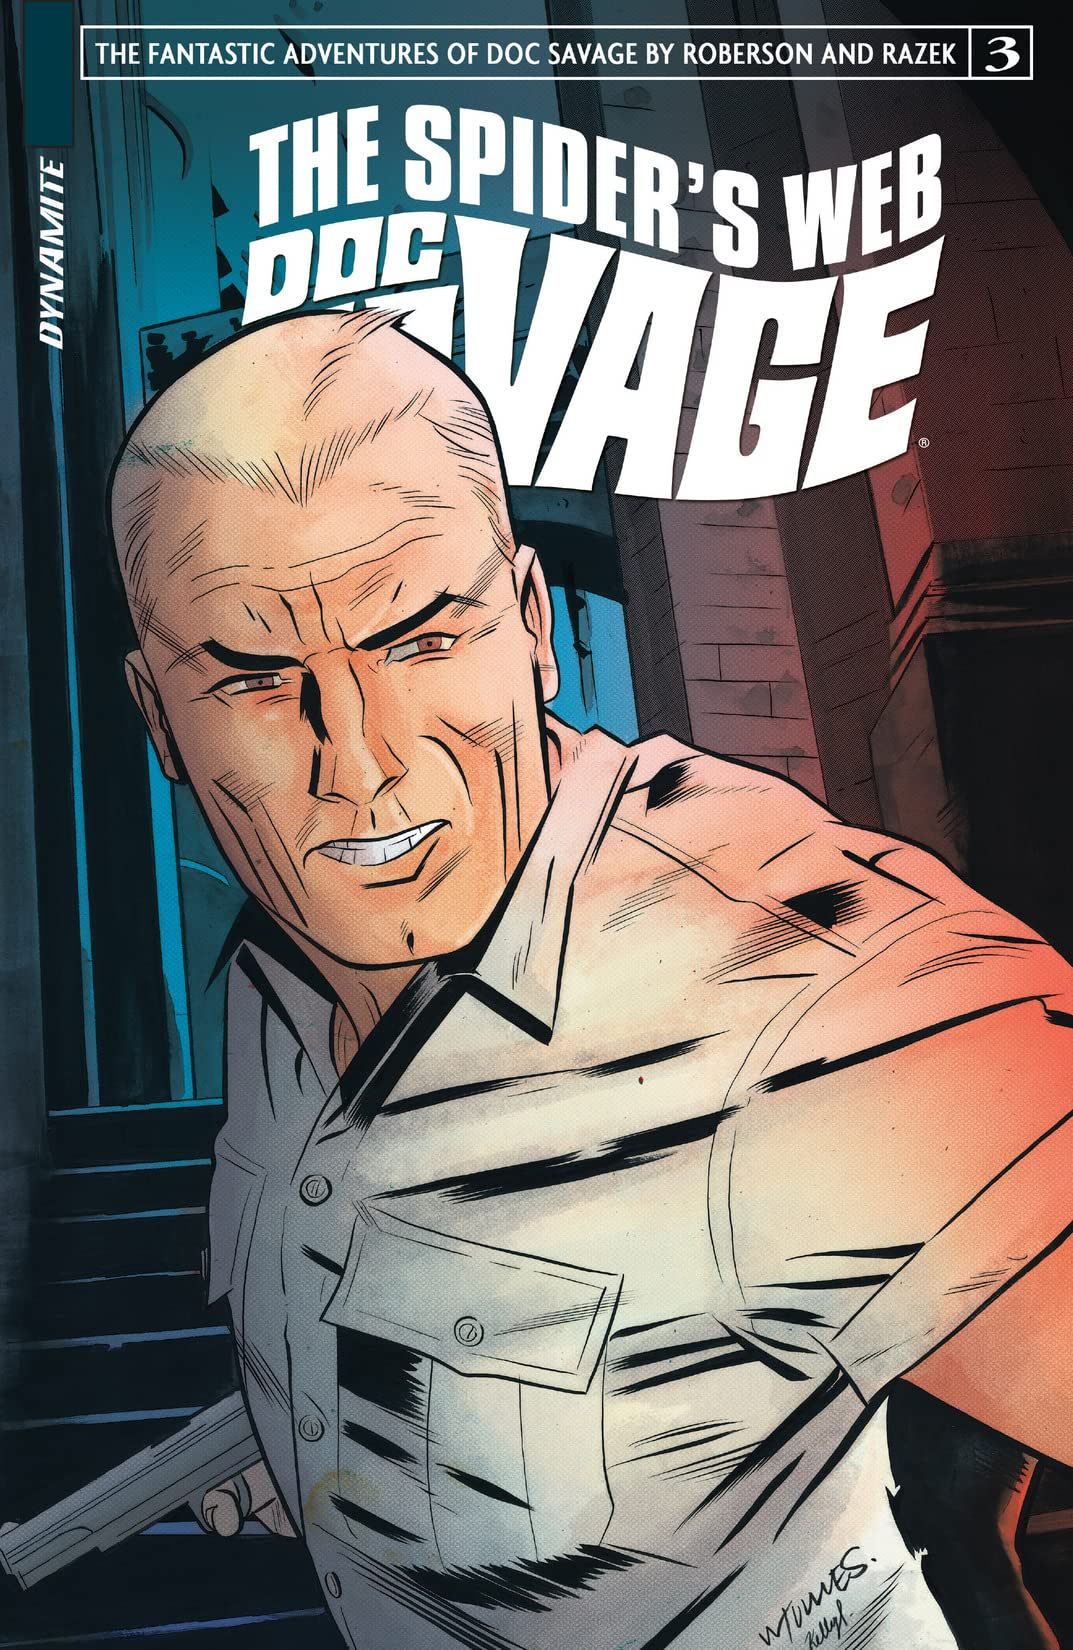 Doc Savage: The Spider's Web #3: Digital Exclusive Edition